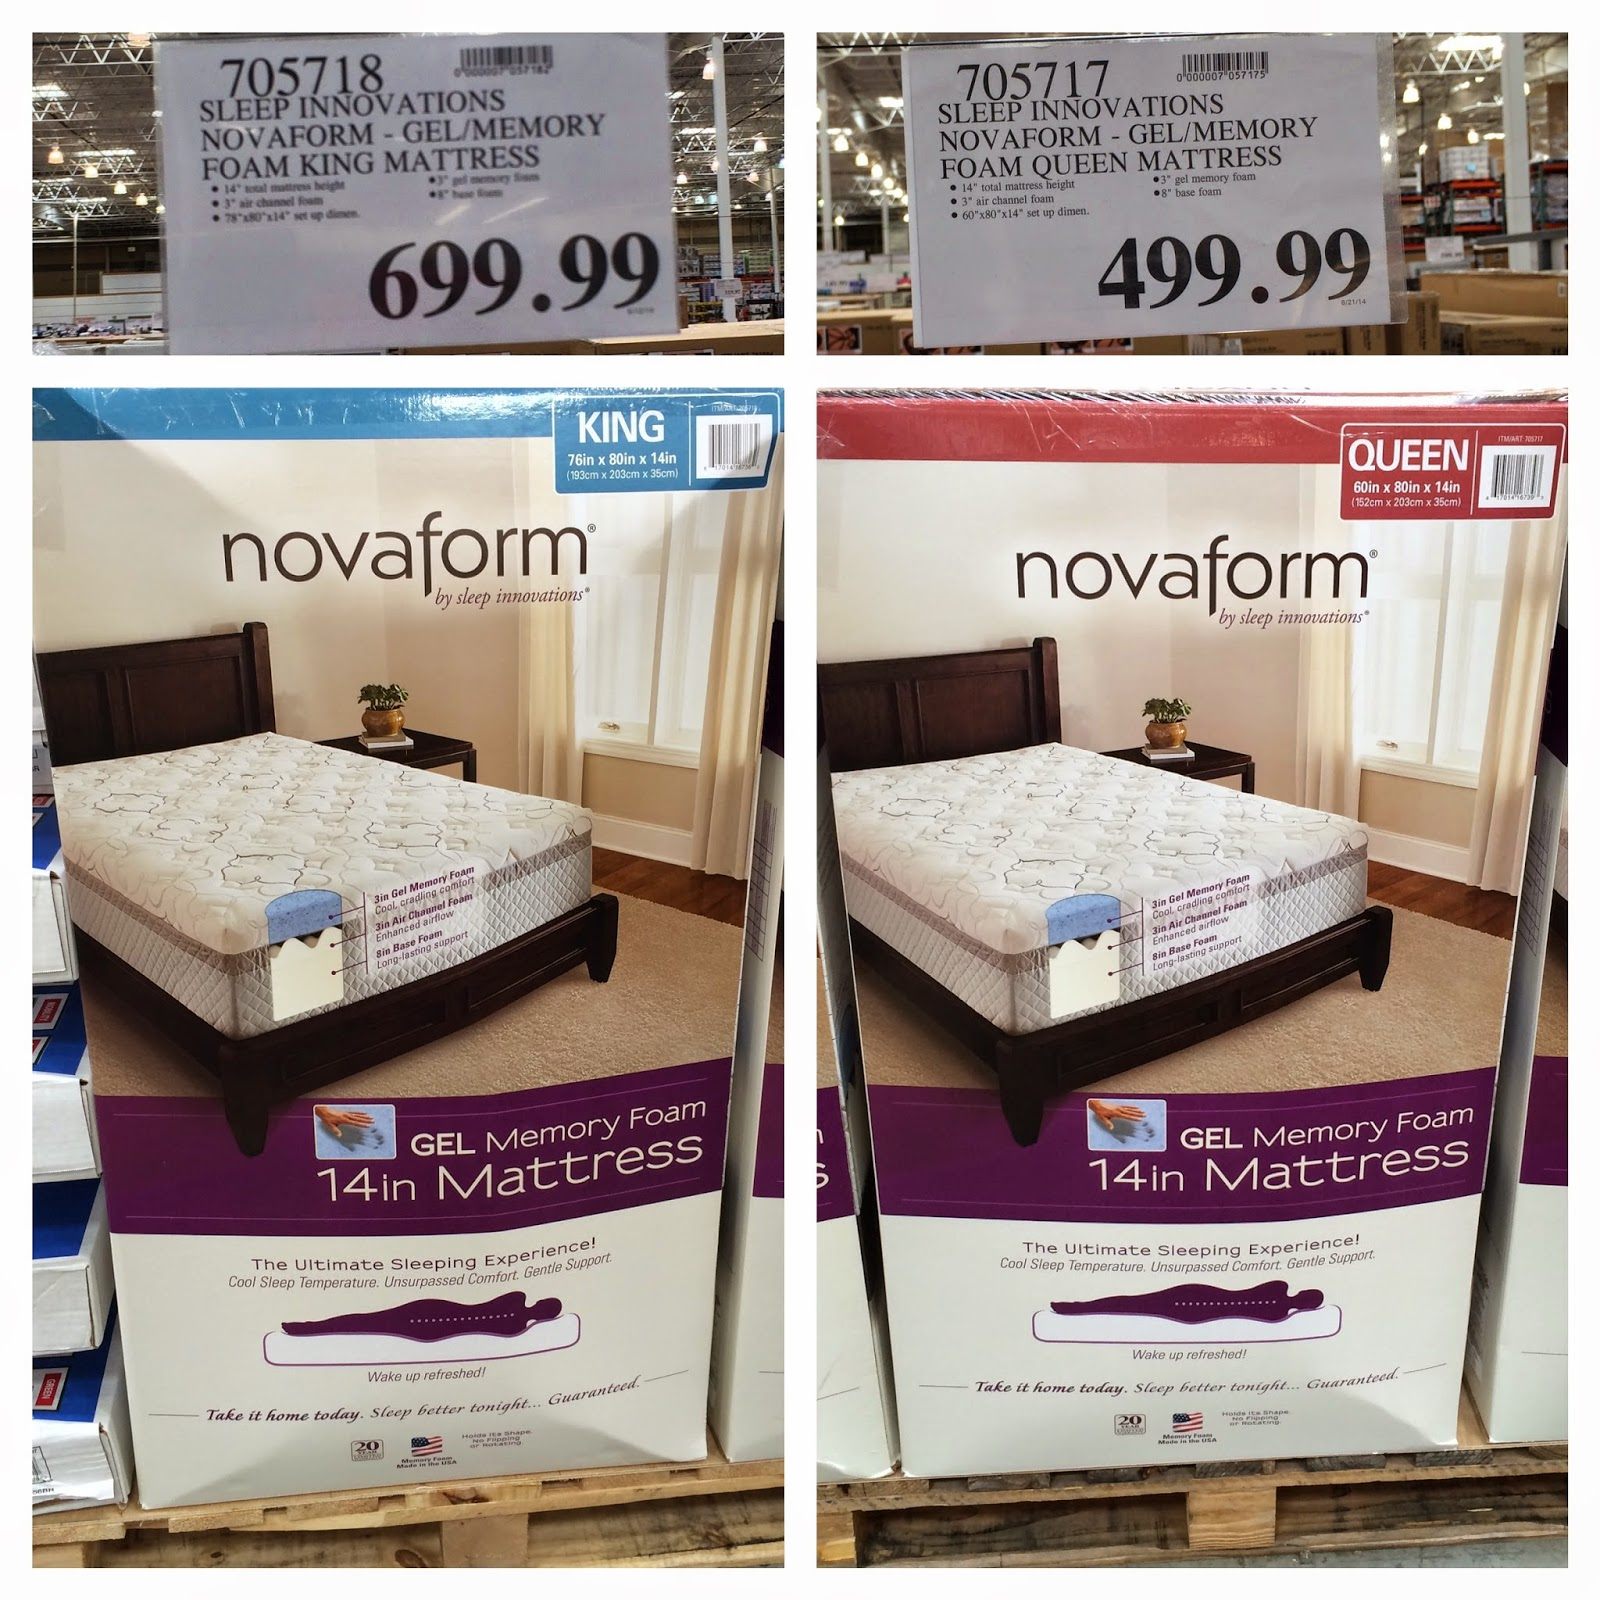 the Costco Connoisseur: Buy Your New Mattress at Costco!